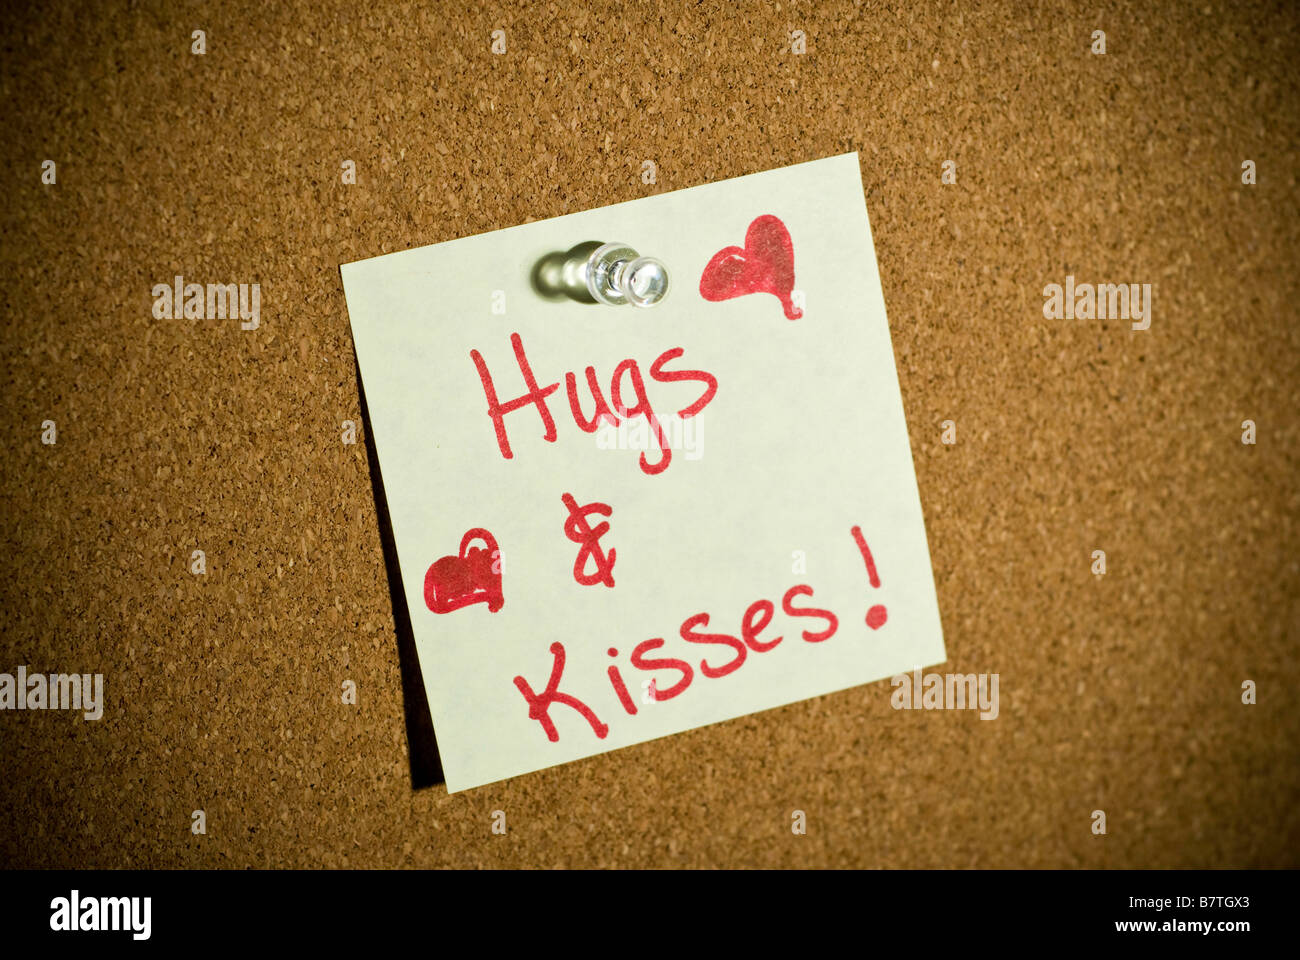 A post it note or memo on a cork board that says Hugs and Kisses for Valentines's day with hearts. - Stock Image